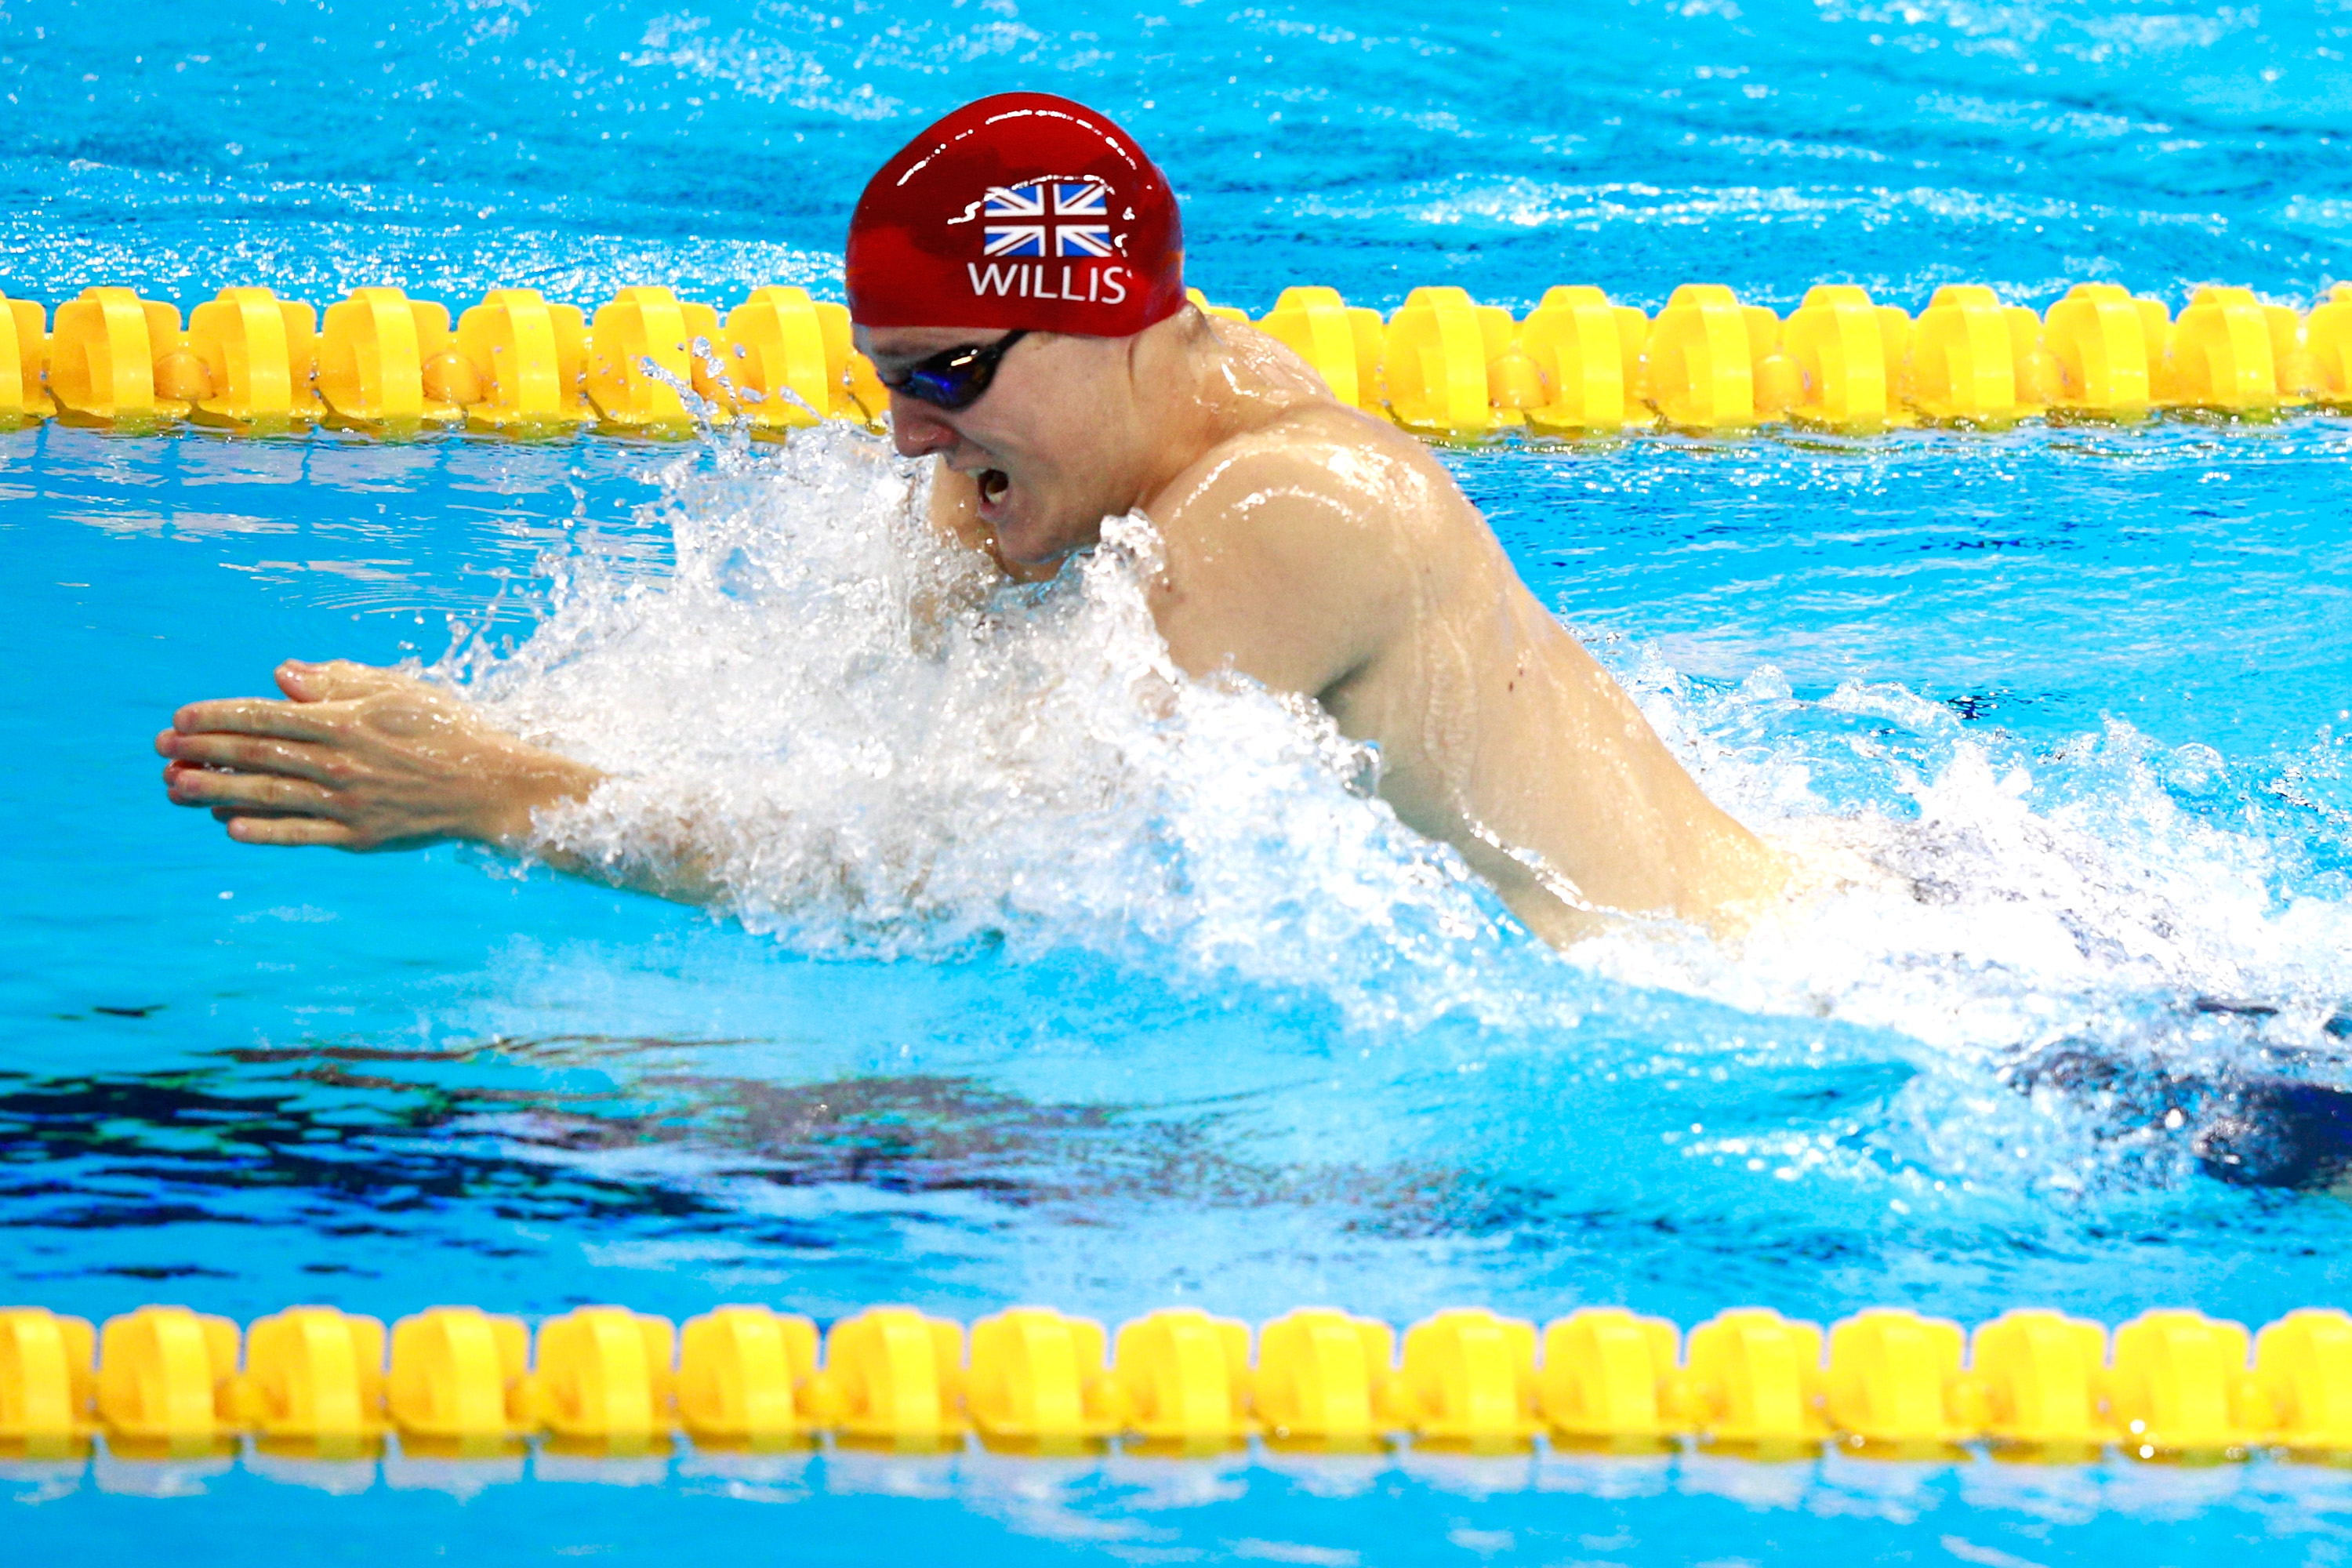 Andrew Willis narrowly misses out on bronze in men's 200m breaststroke in Olympic Games